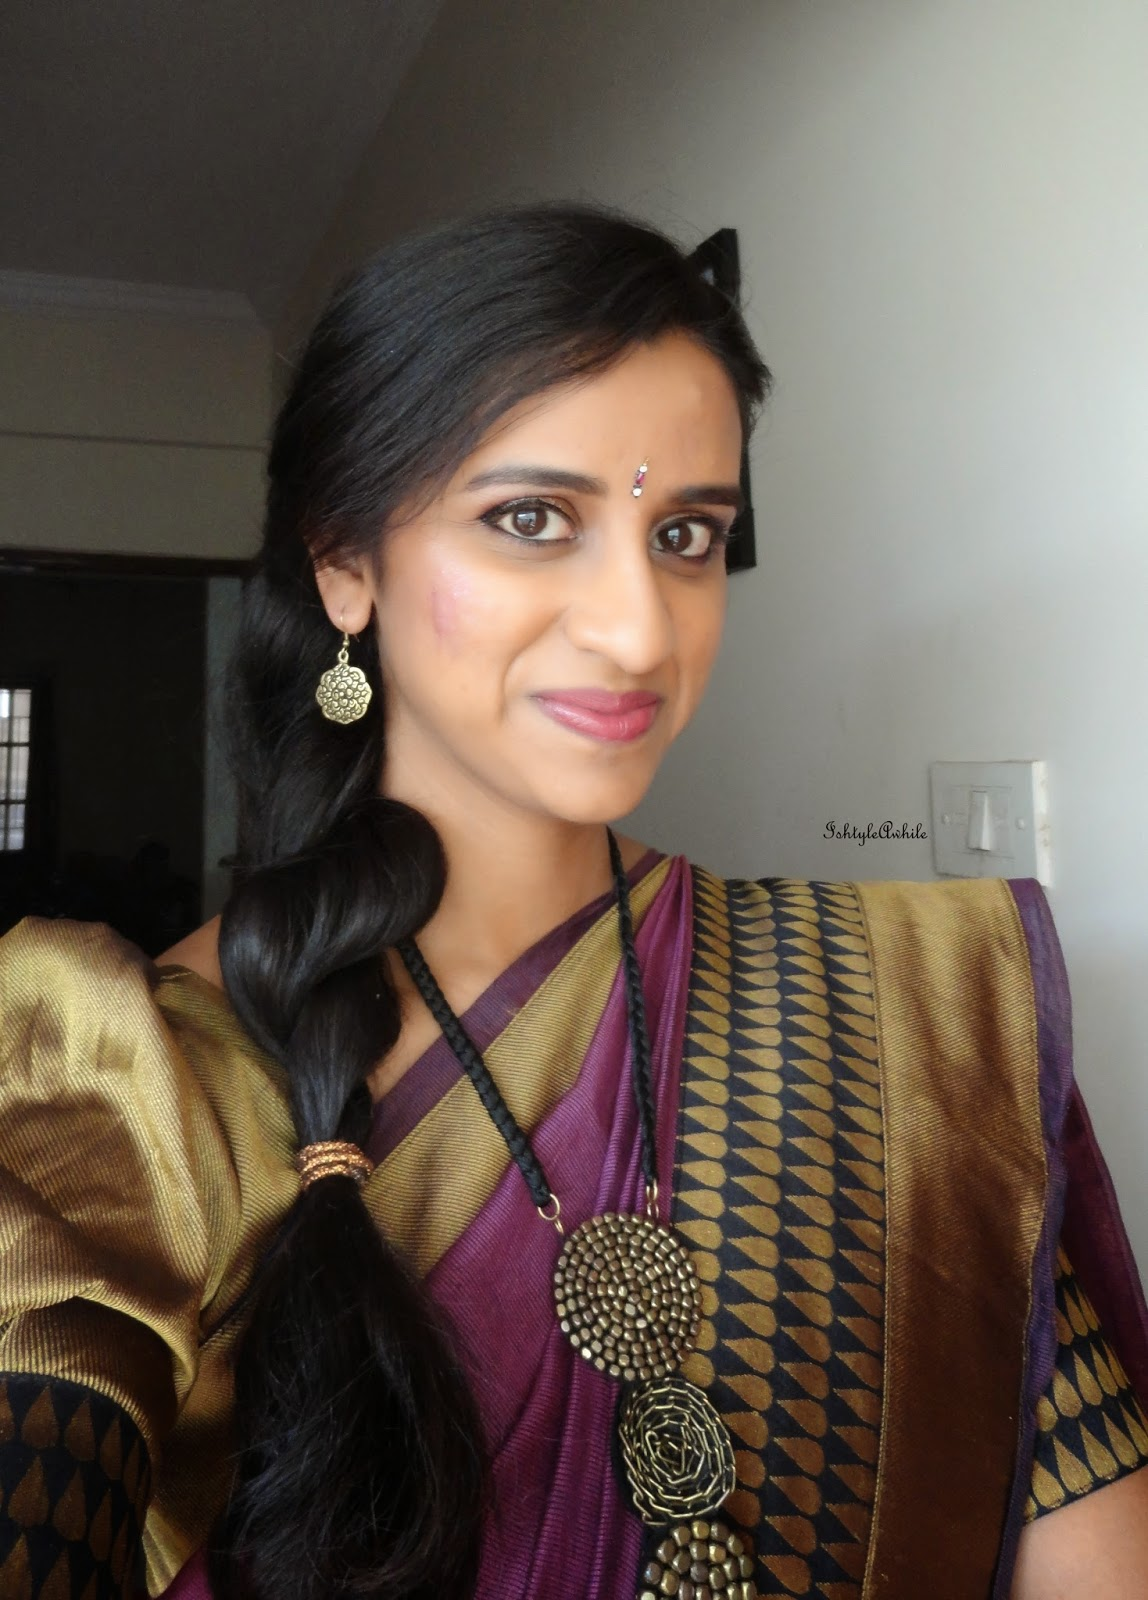 Makeup that I wore for the ASUS Indiblogger meet + graduation day image